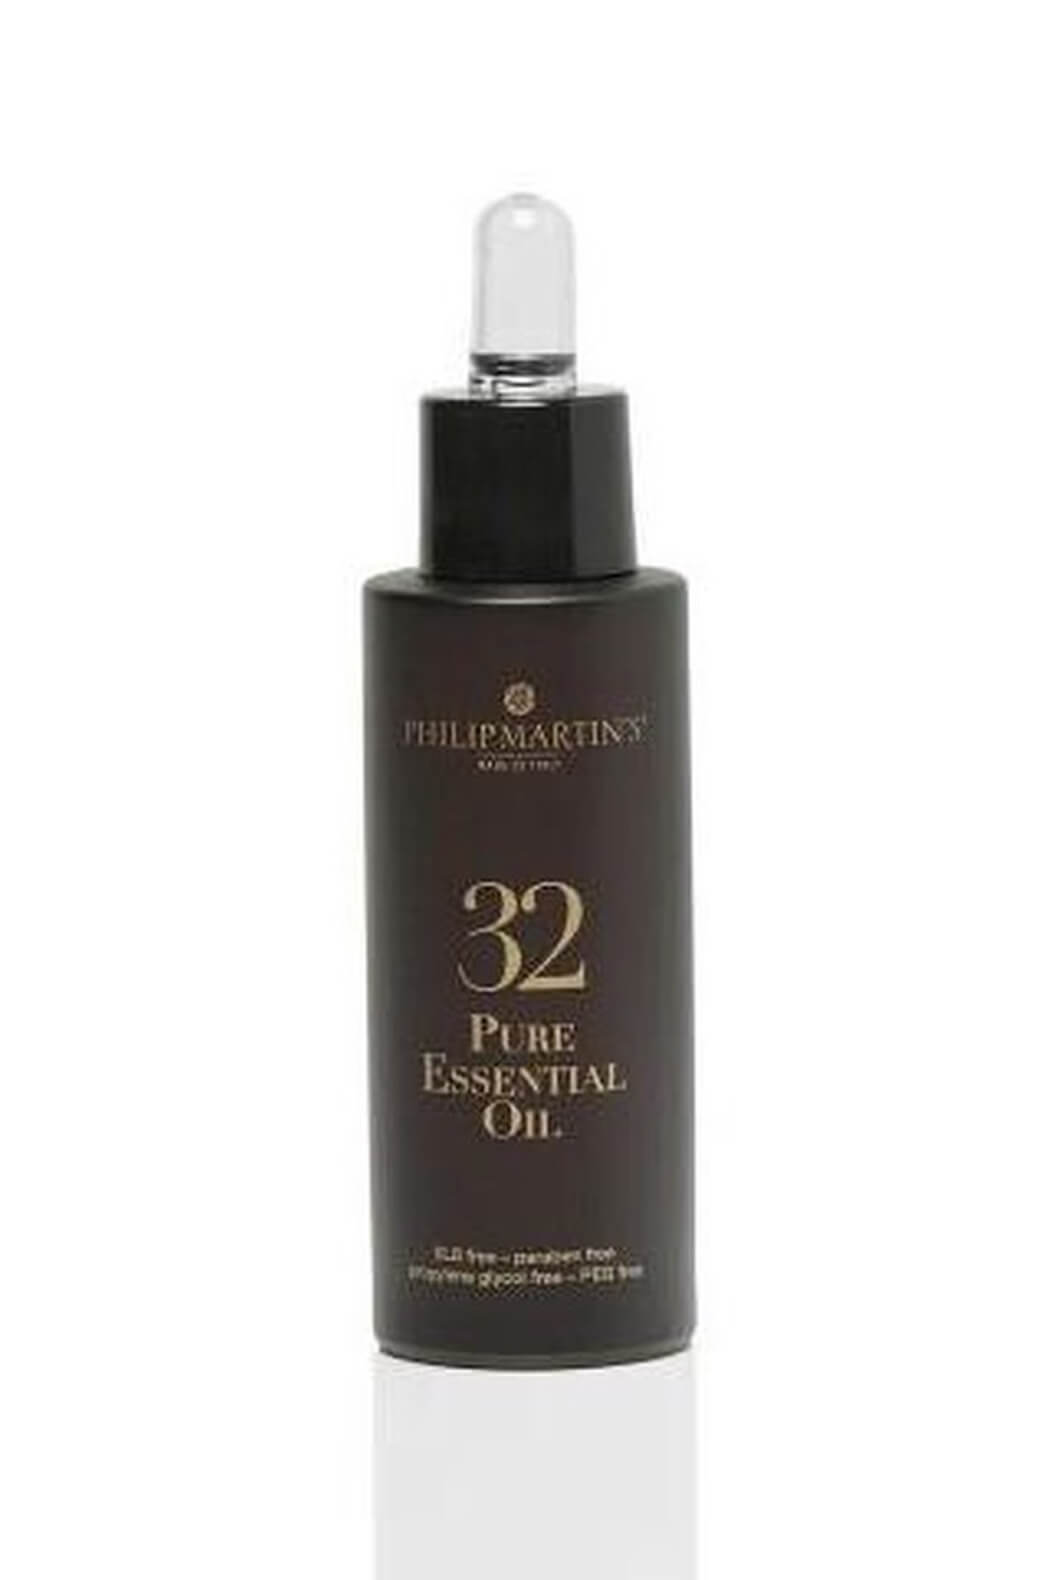 Philip-Martins-32-Pure-Essential-Oil | Konzept H